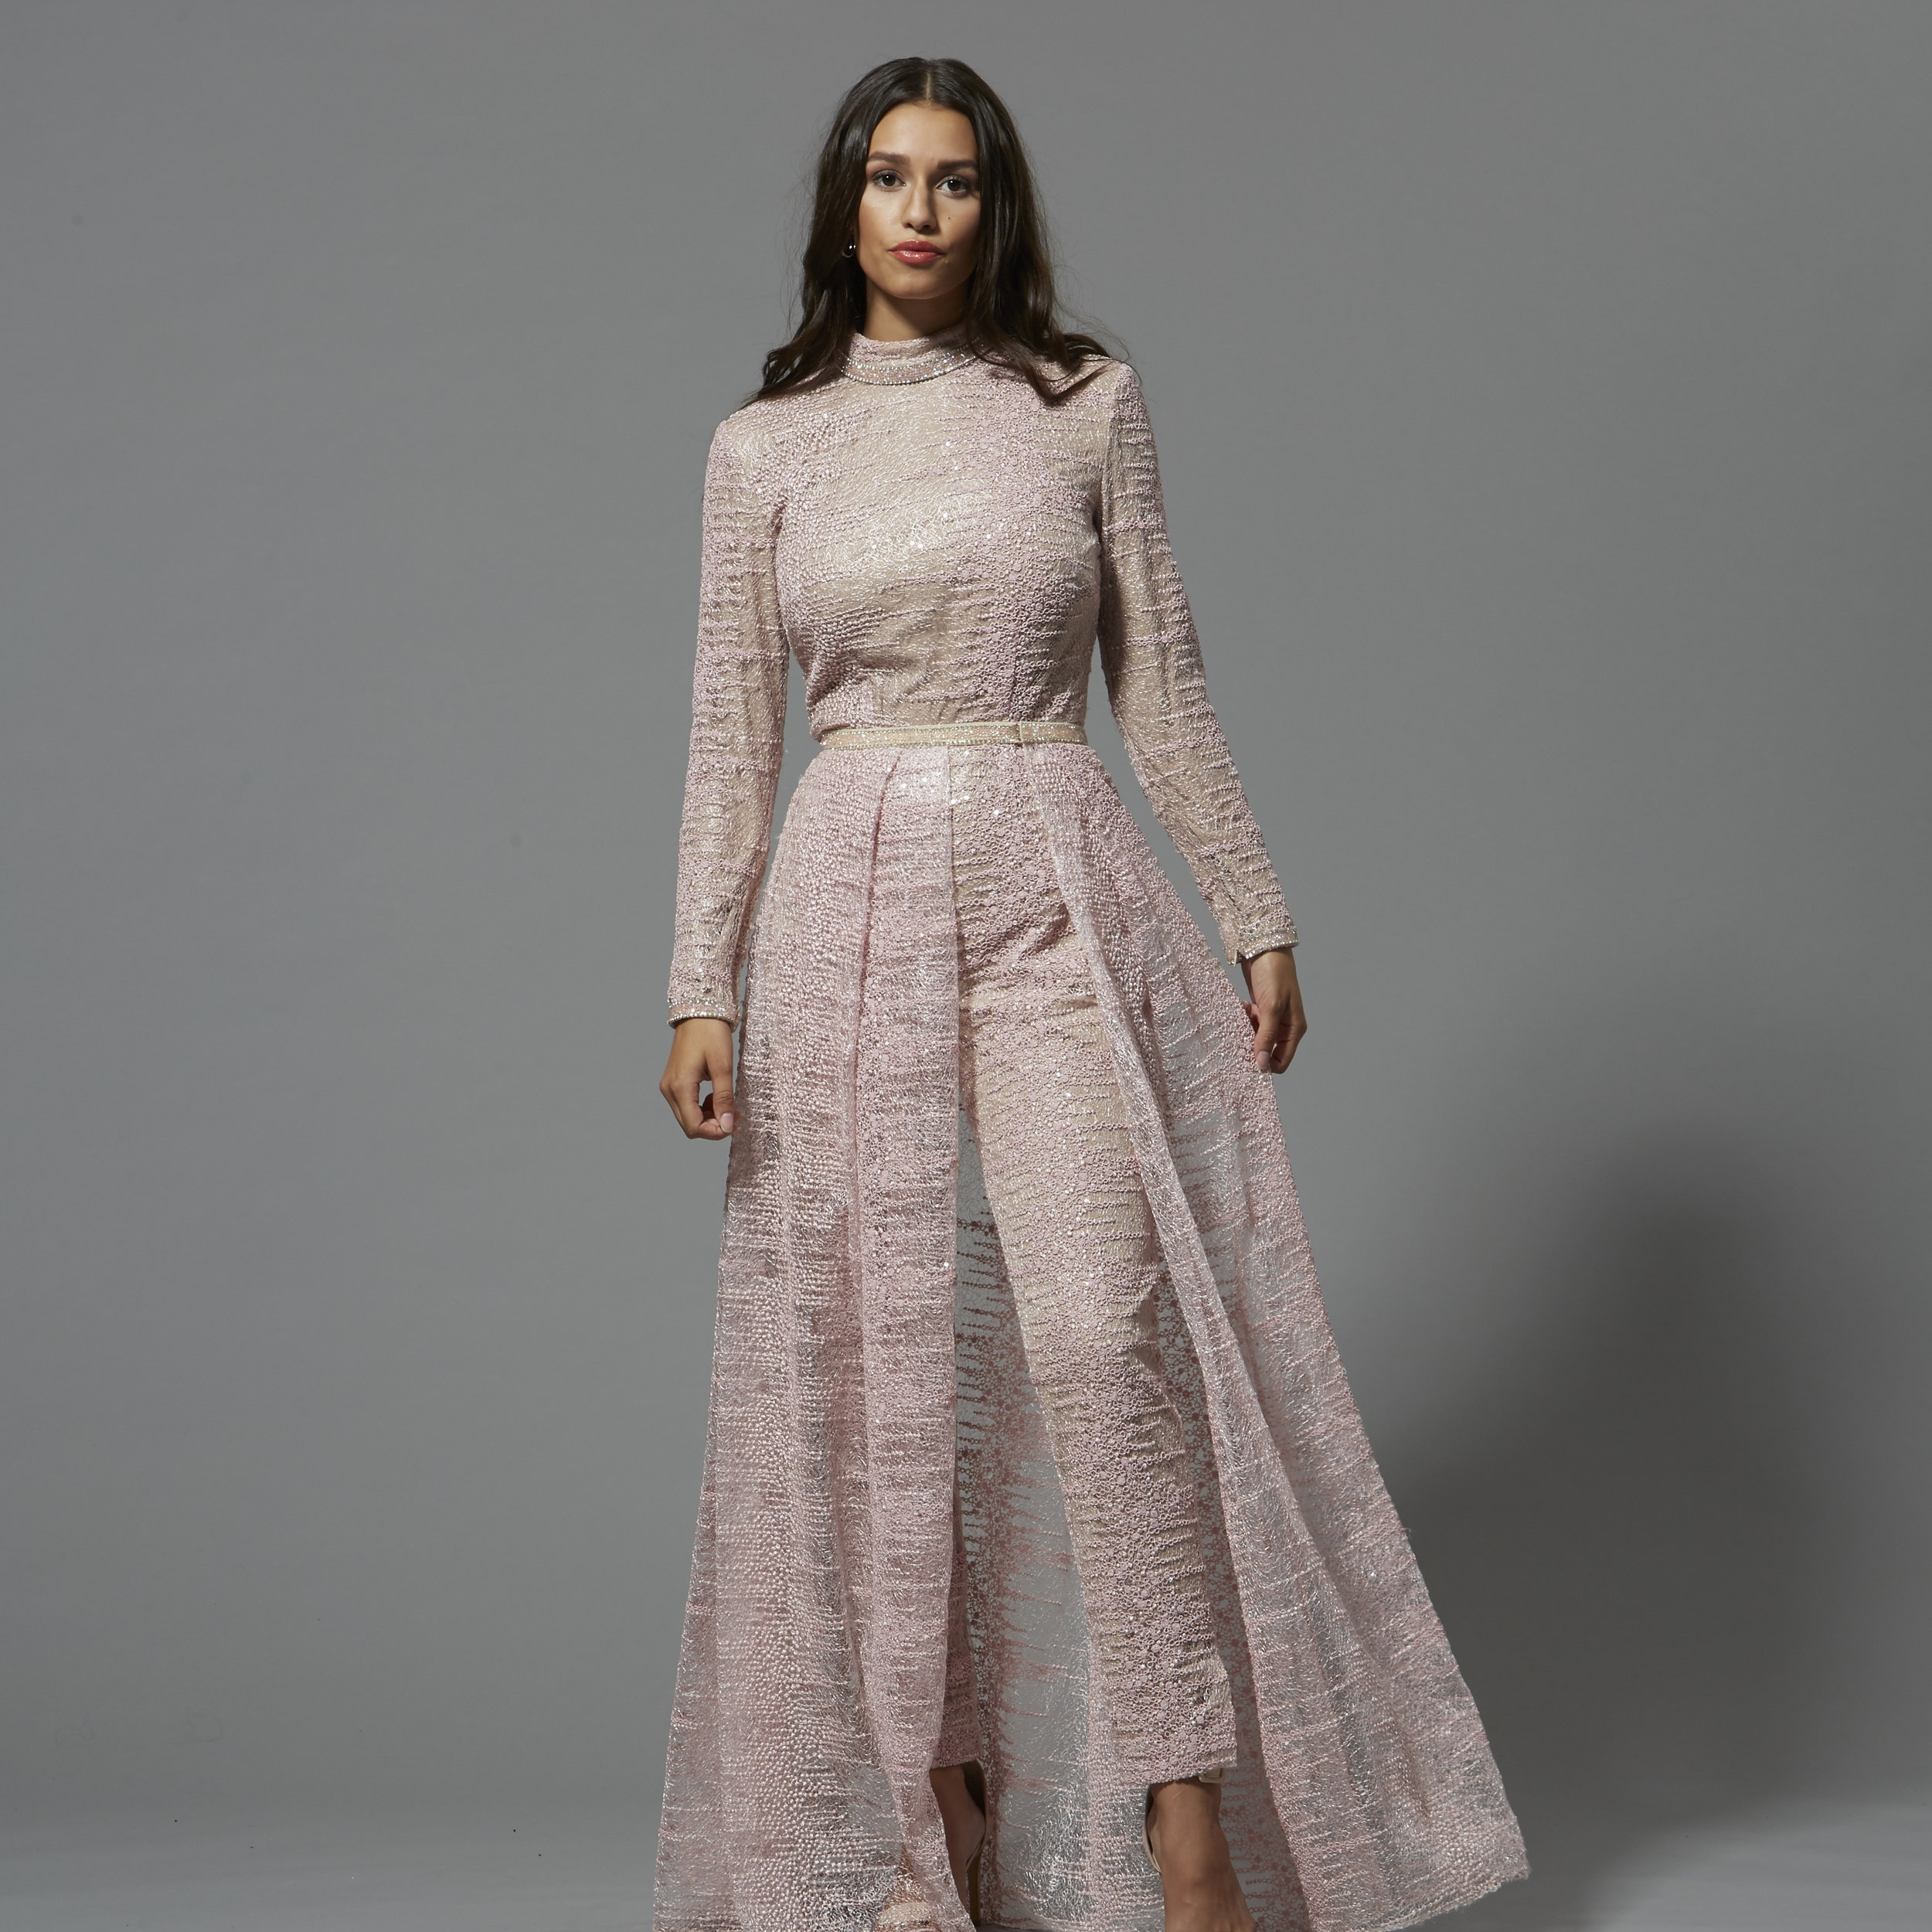 Shay Jaffar - ShayJaffar.comAdd these to your holiday wish-list this season. Emerging fashion company Shay Jaffar makes apparel where coverage is sublime and those adorned are destined to steal the spotlight. (Babson M'19)